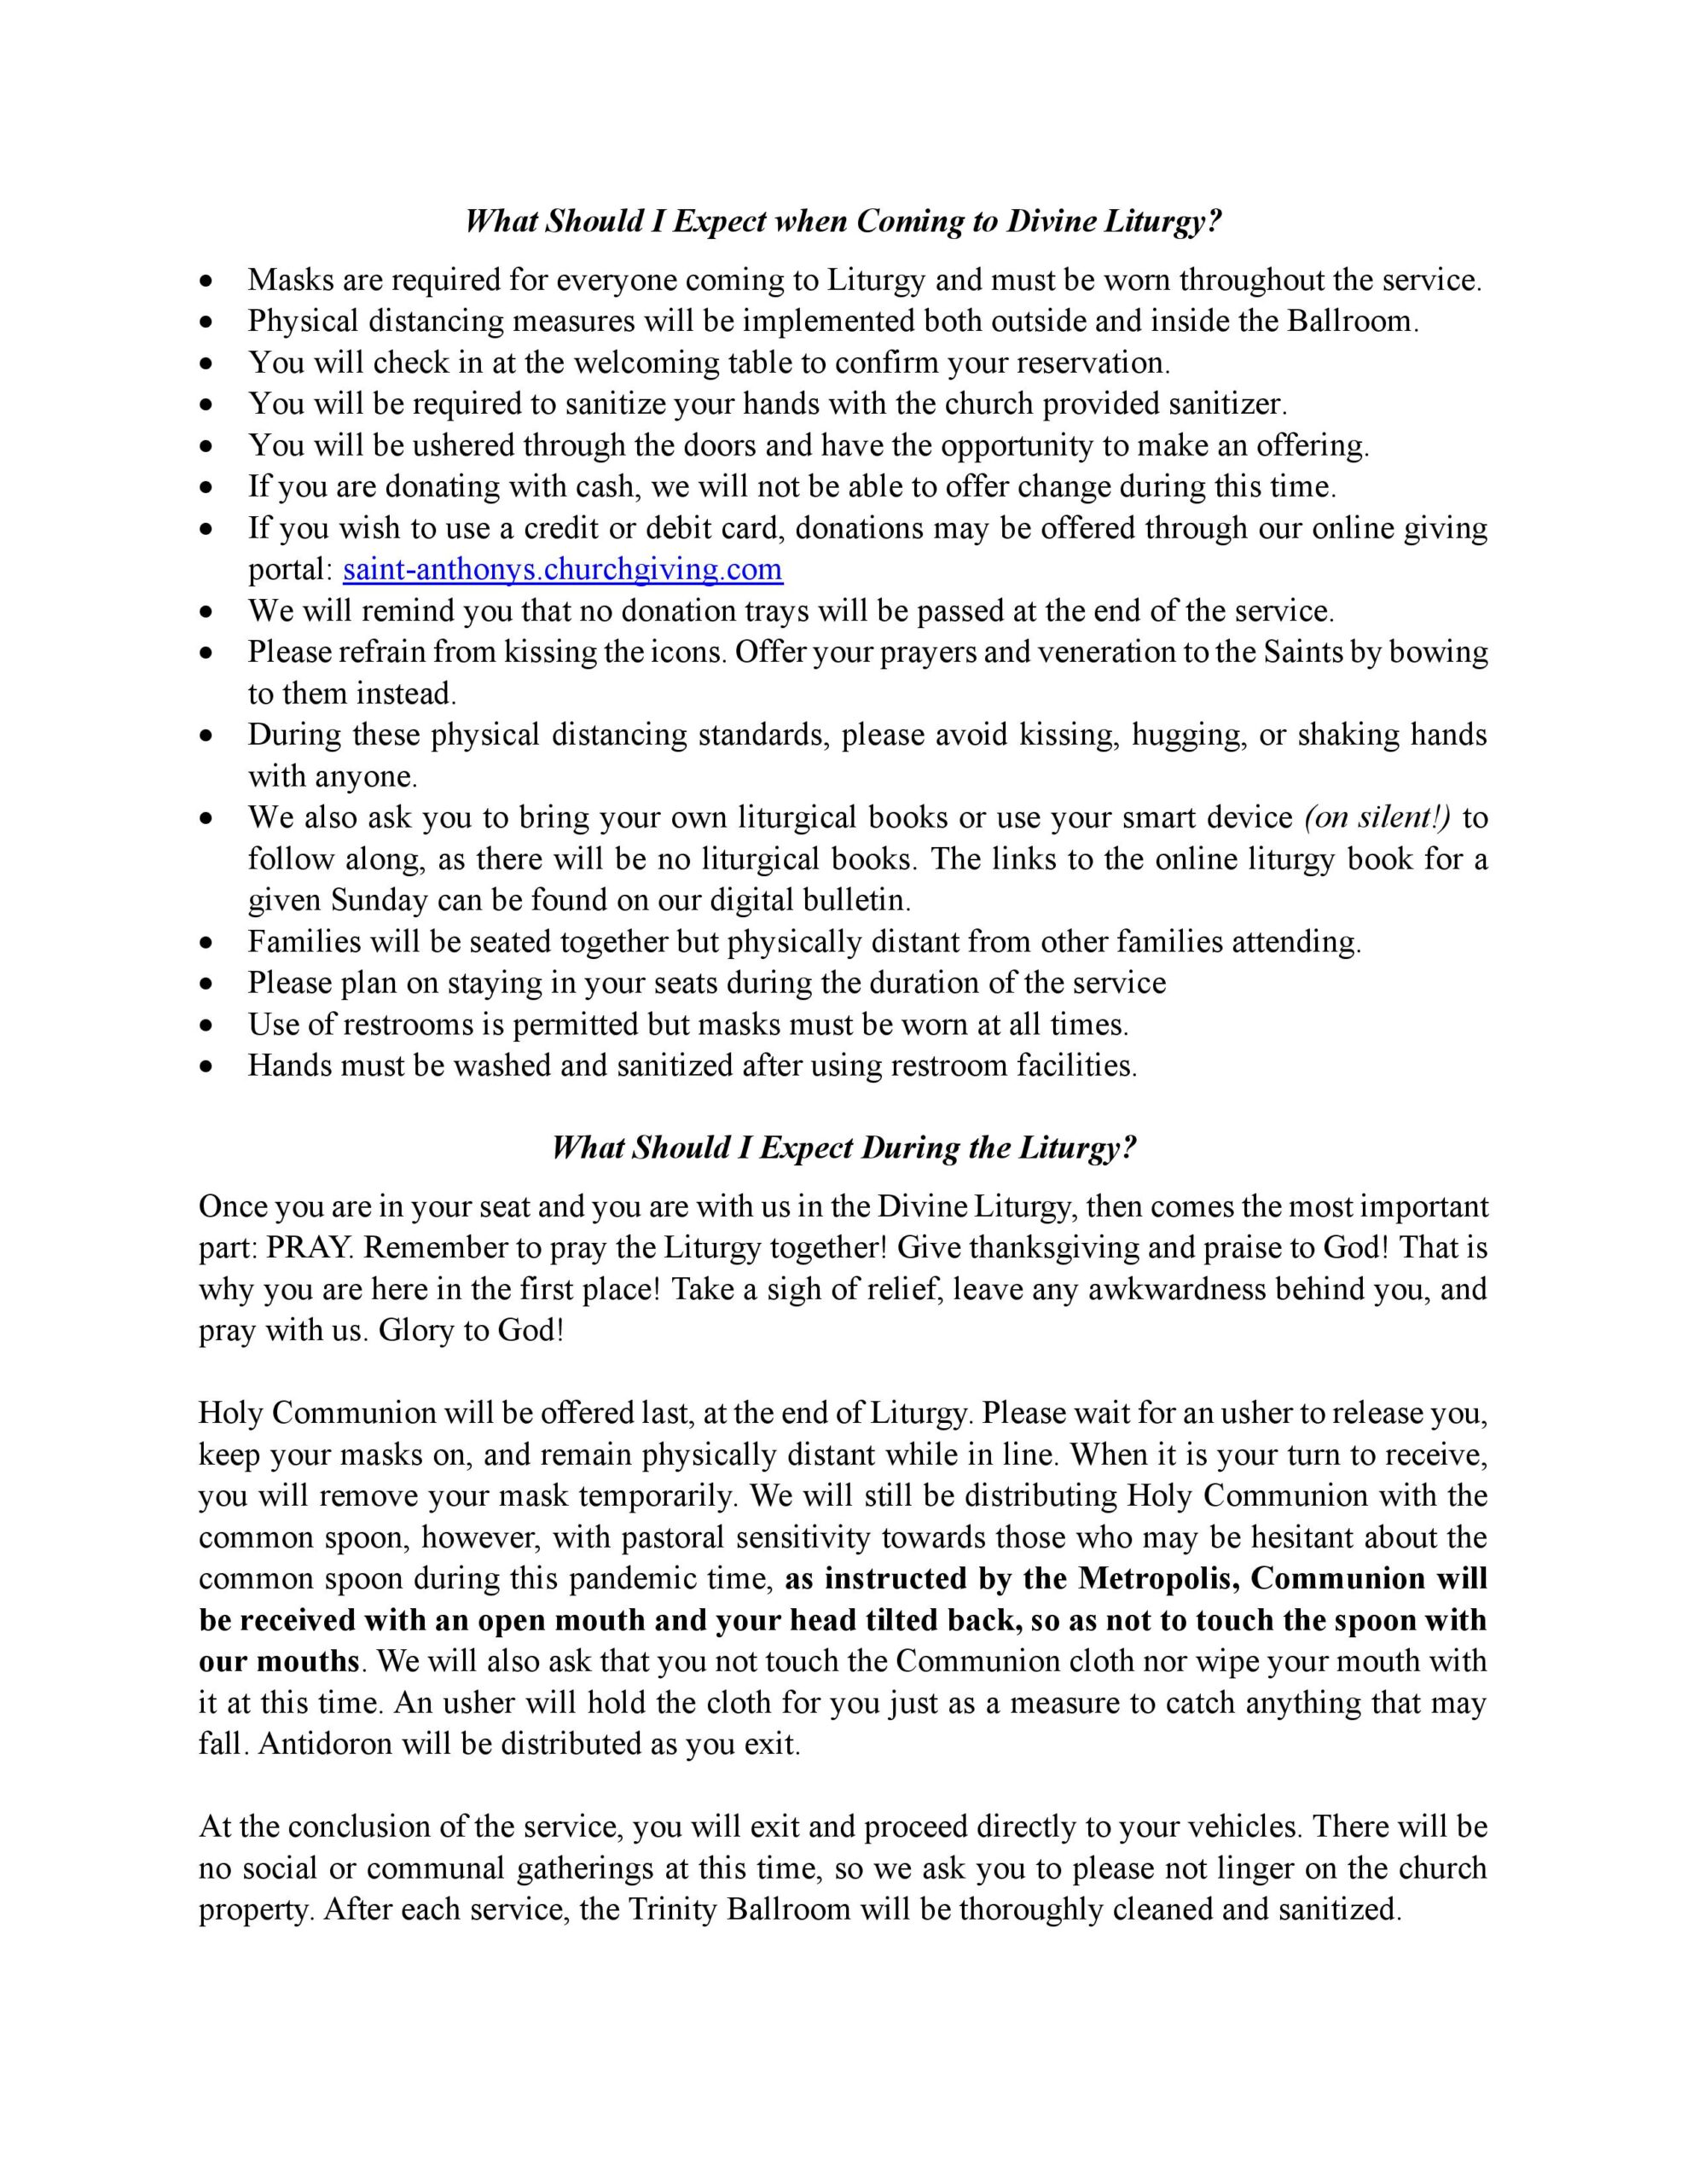 reopening letter edited 6.11.20-page-003